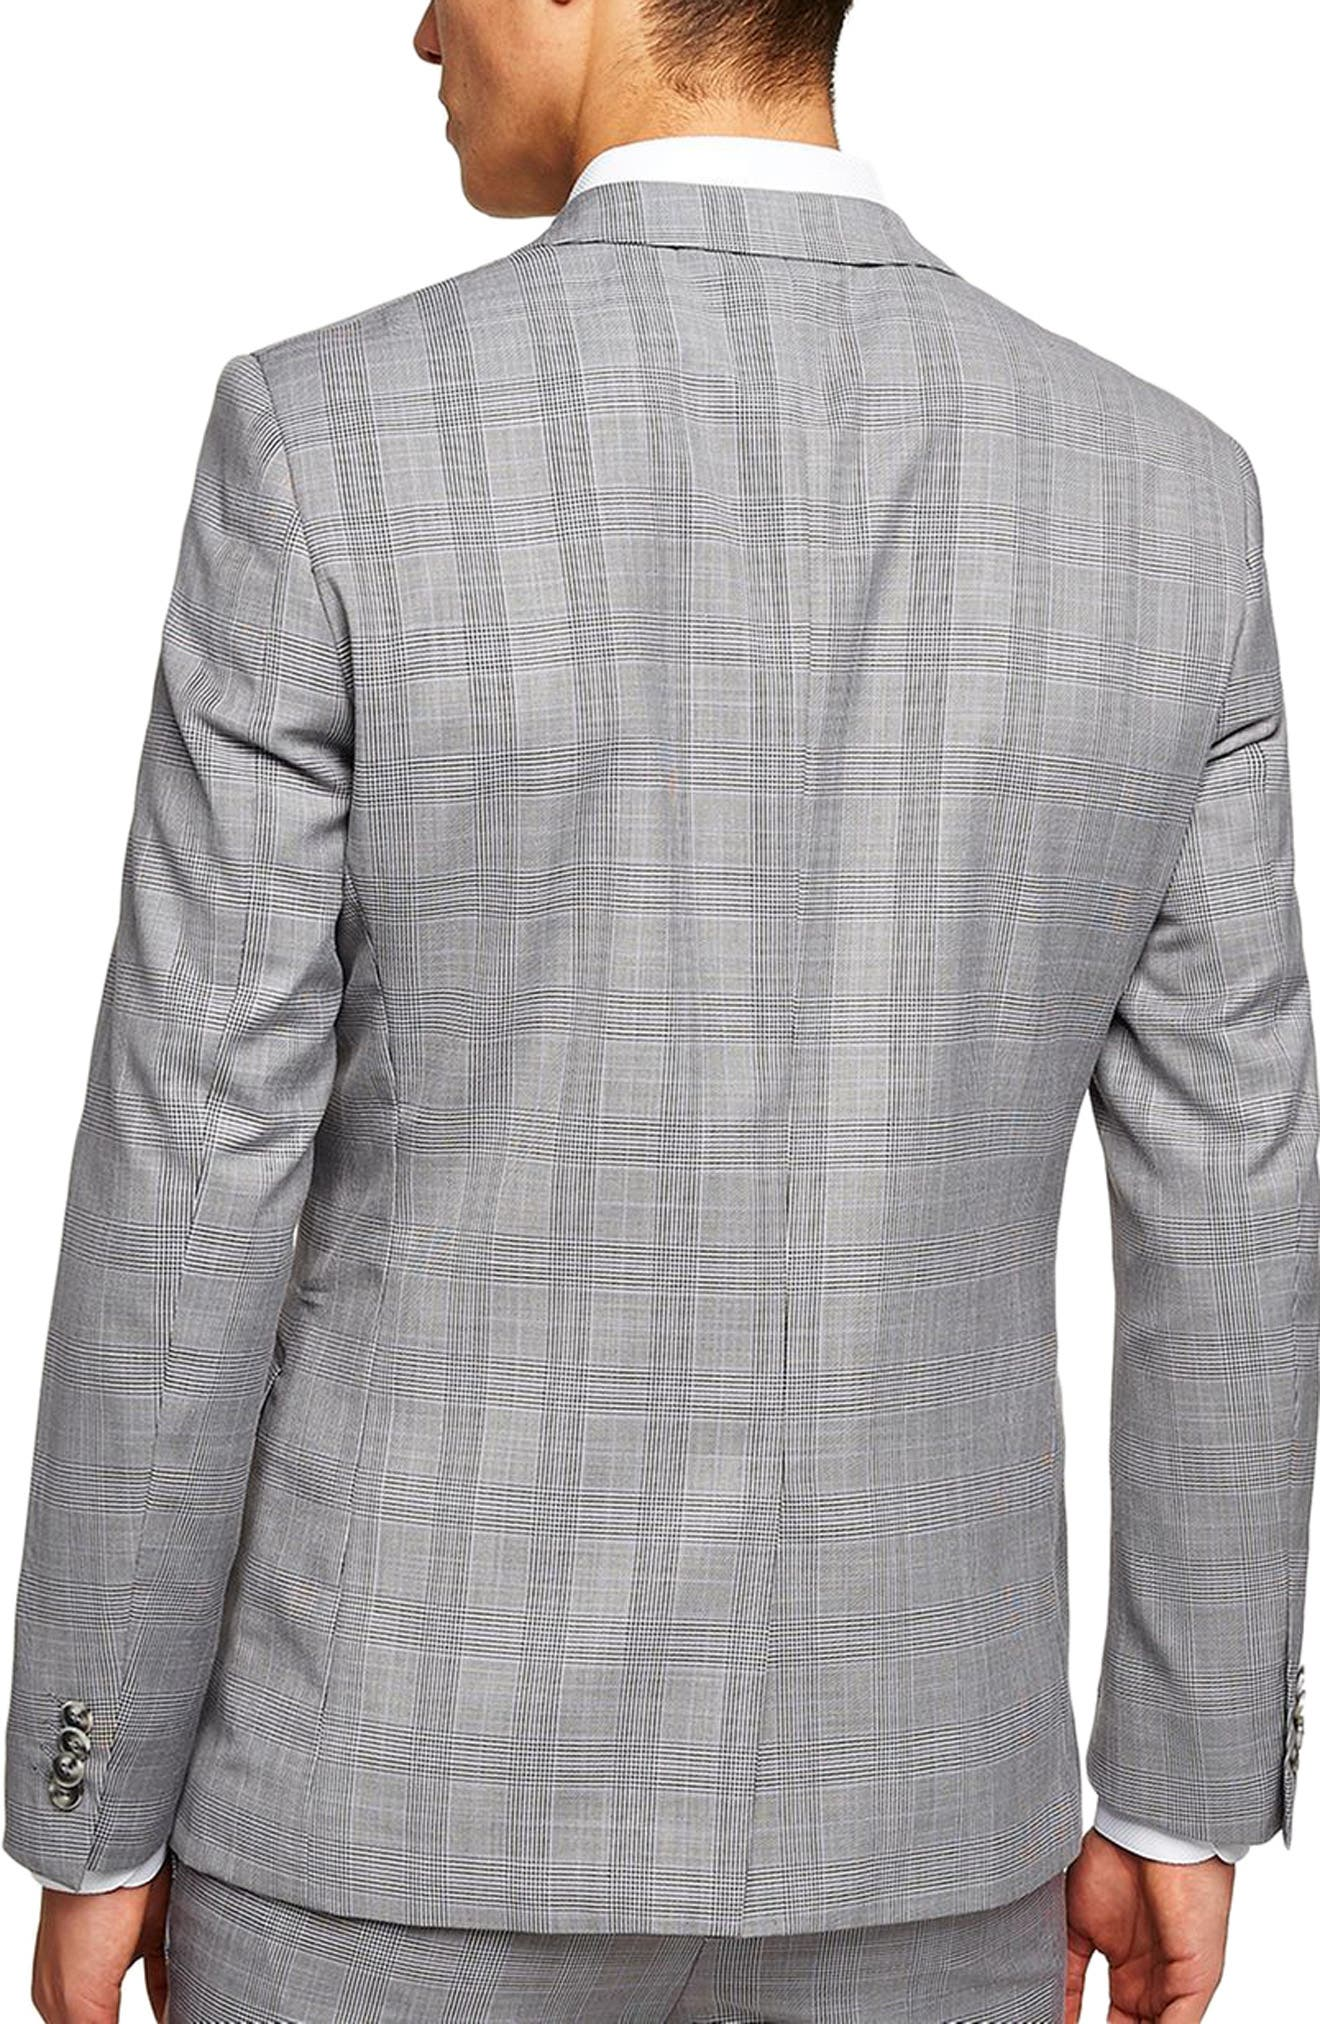 Skinny Fit Check Suit Jacket,                             Alternate thumbnail 2, color,                             Grey Multi